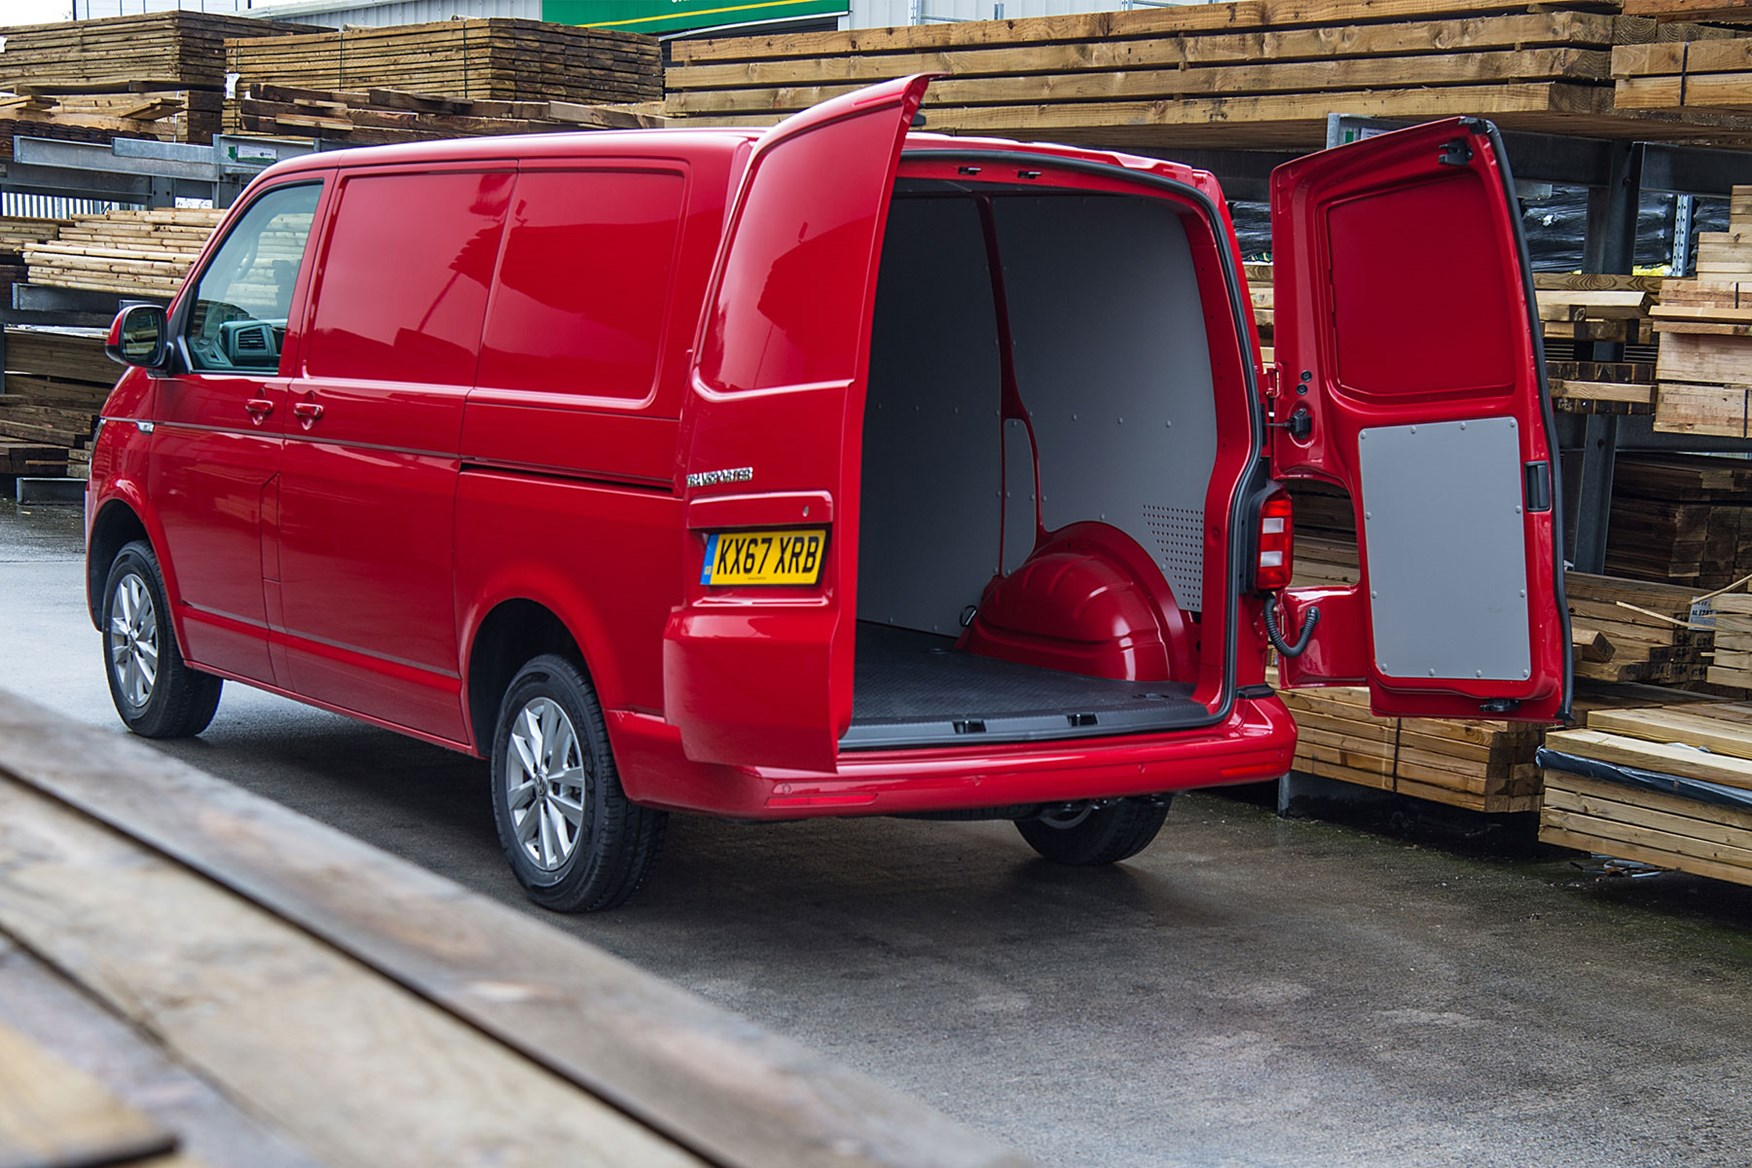 VW Transporter (2015-on) load area dimensions